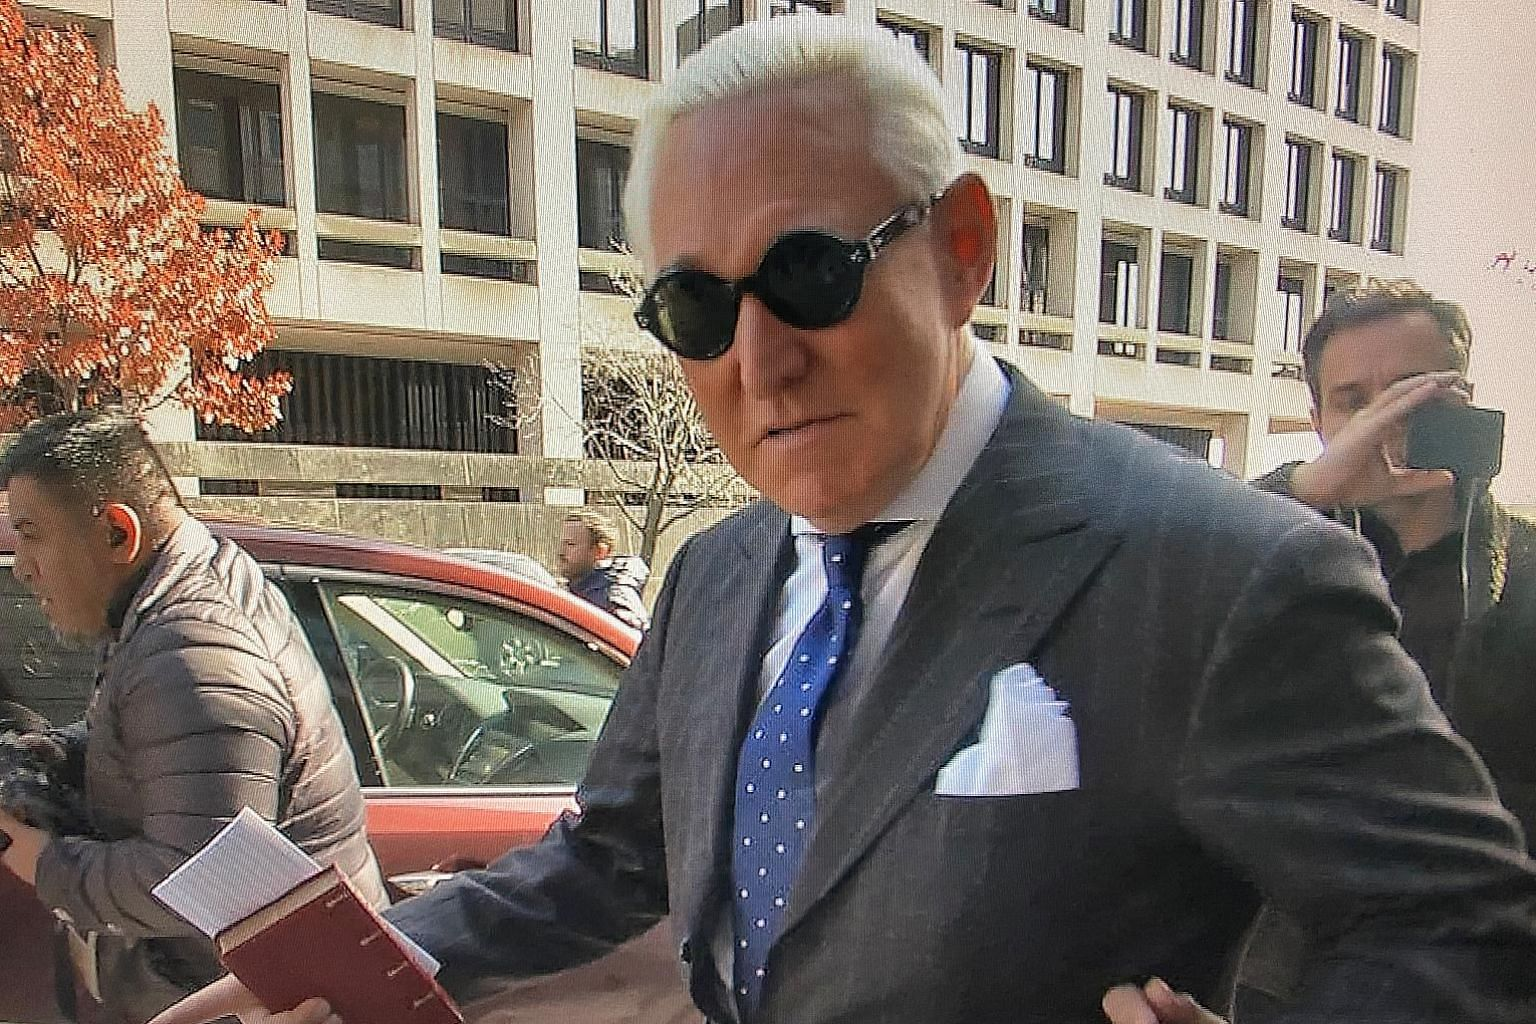 A screengrab from a video showing Roger Stone outside the US District Court in Washington on Friday after he was found guilty of lying to the US Congress, obstructing justice and witness tampering.